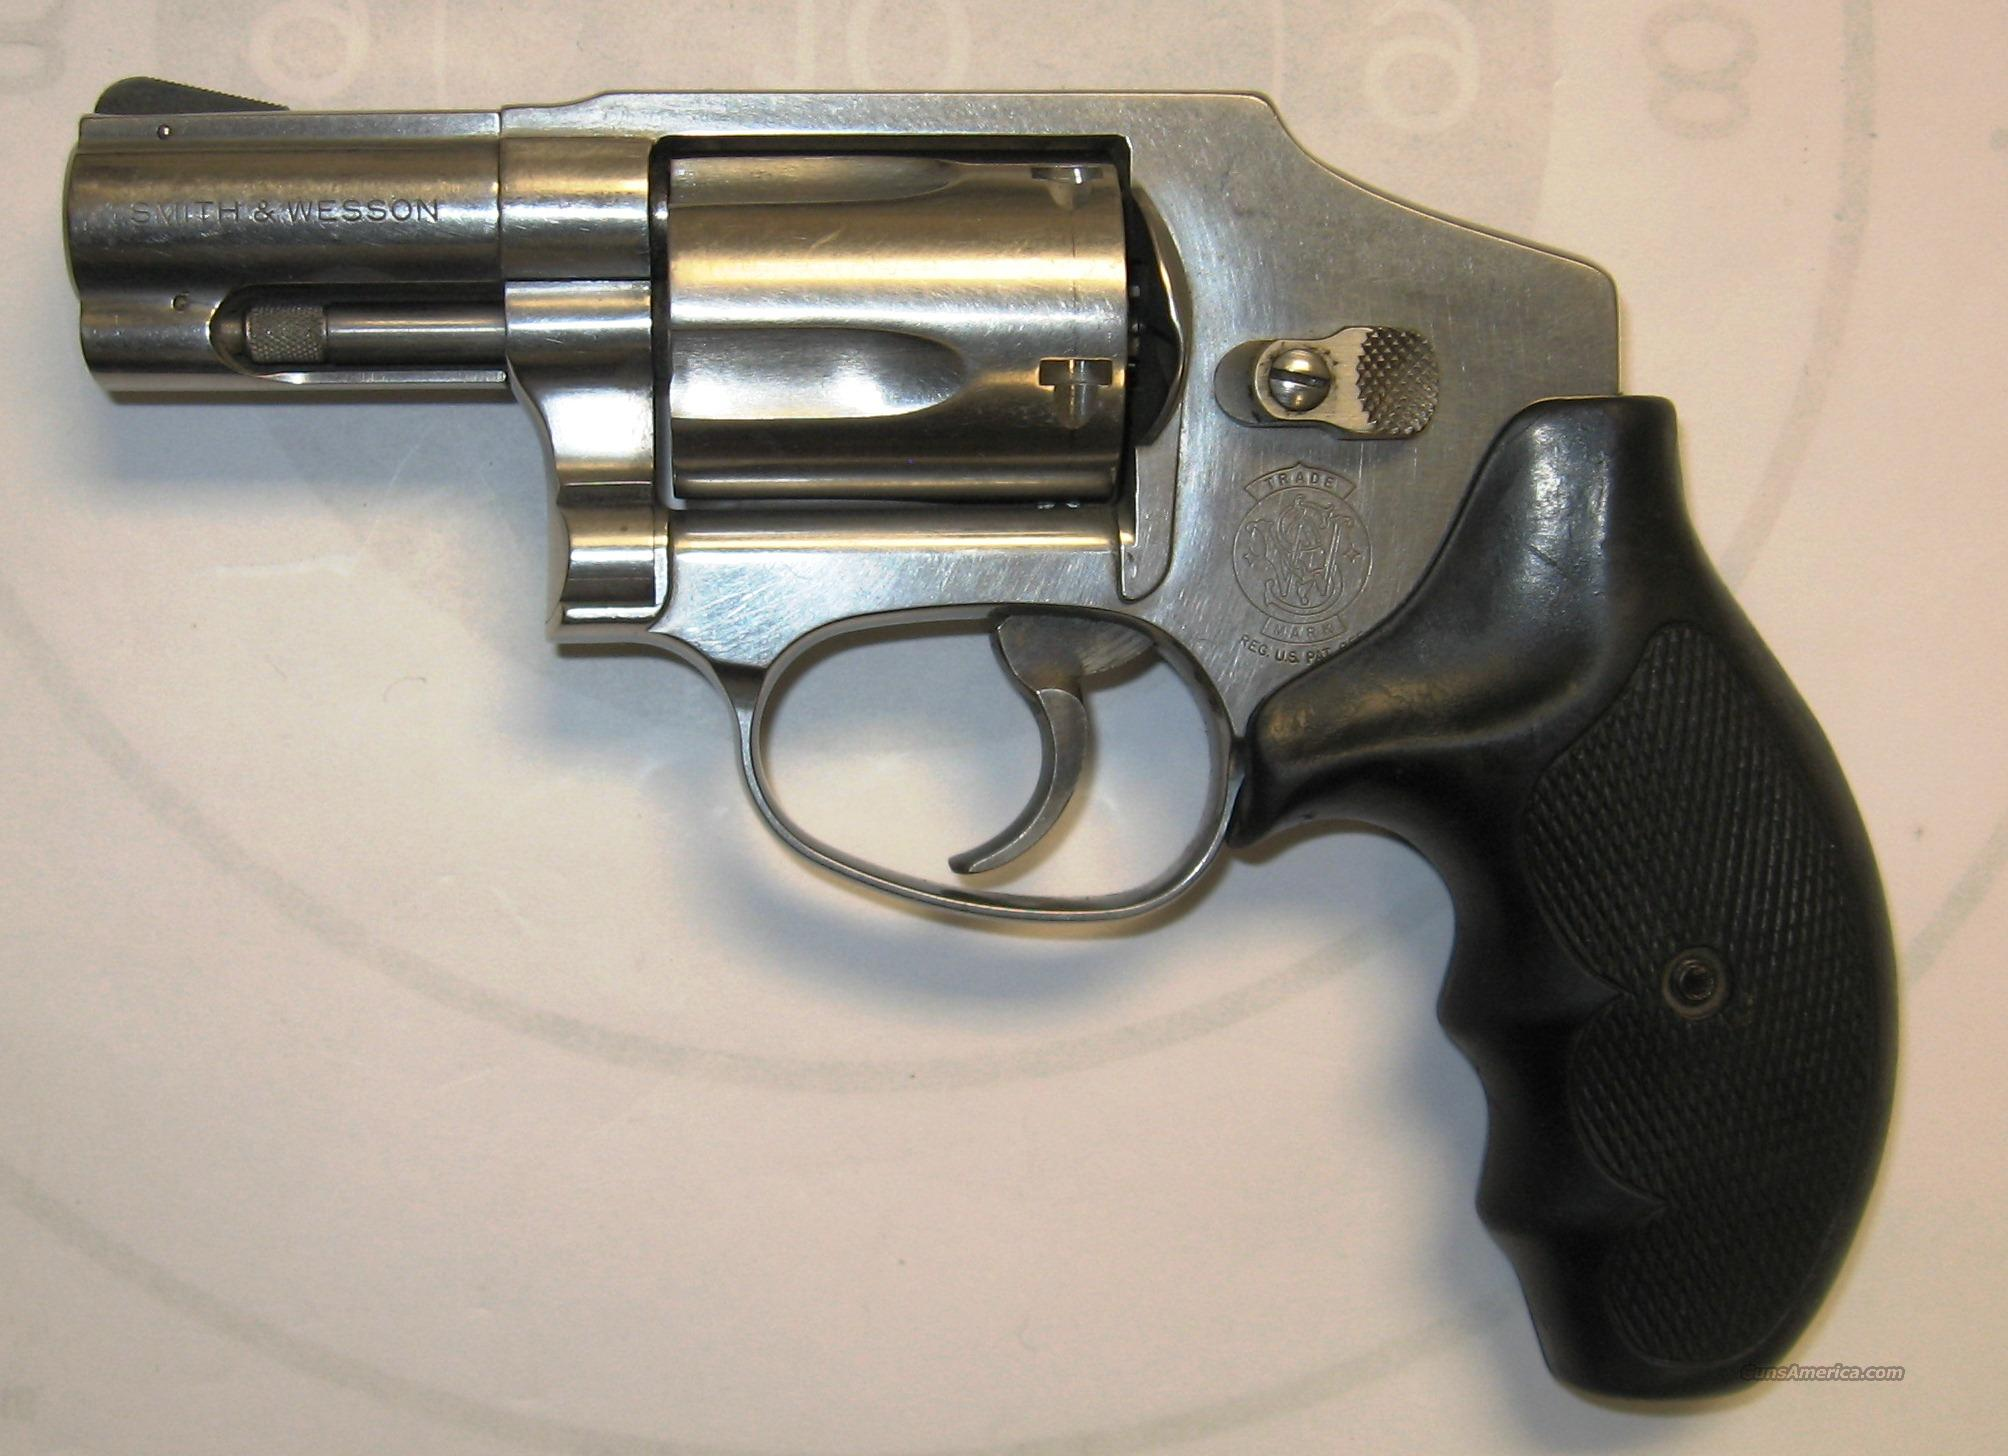 Smith & Wesson 640-1 DAO USED   Guns > Pistols > Smith & Wesson Revolvers > Pocket Pistols